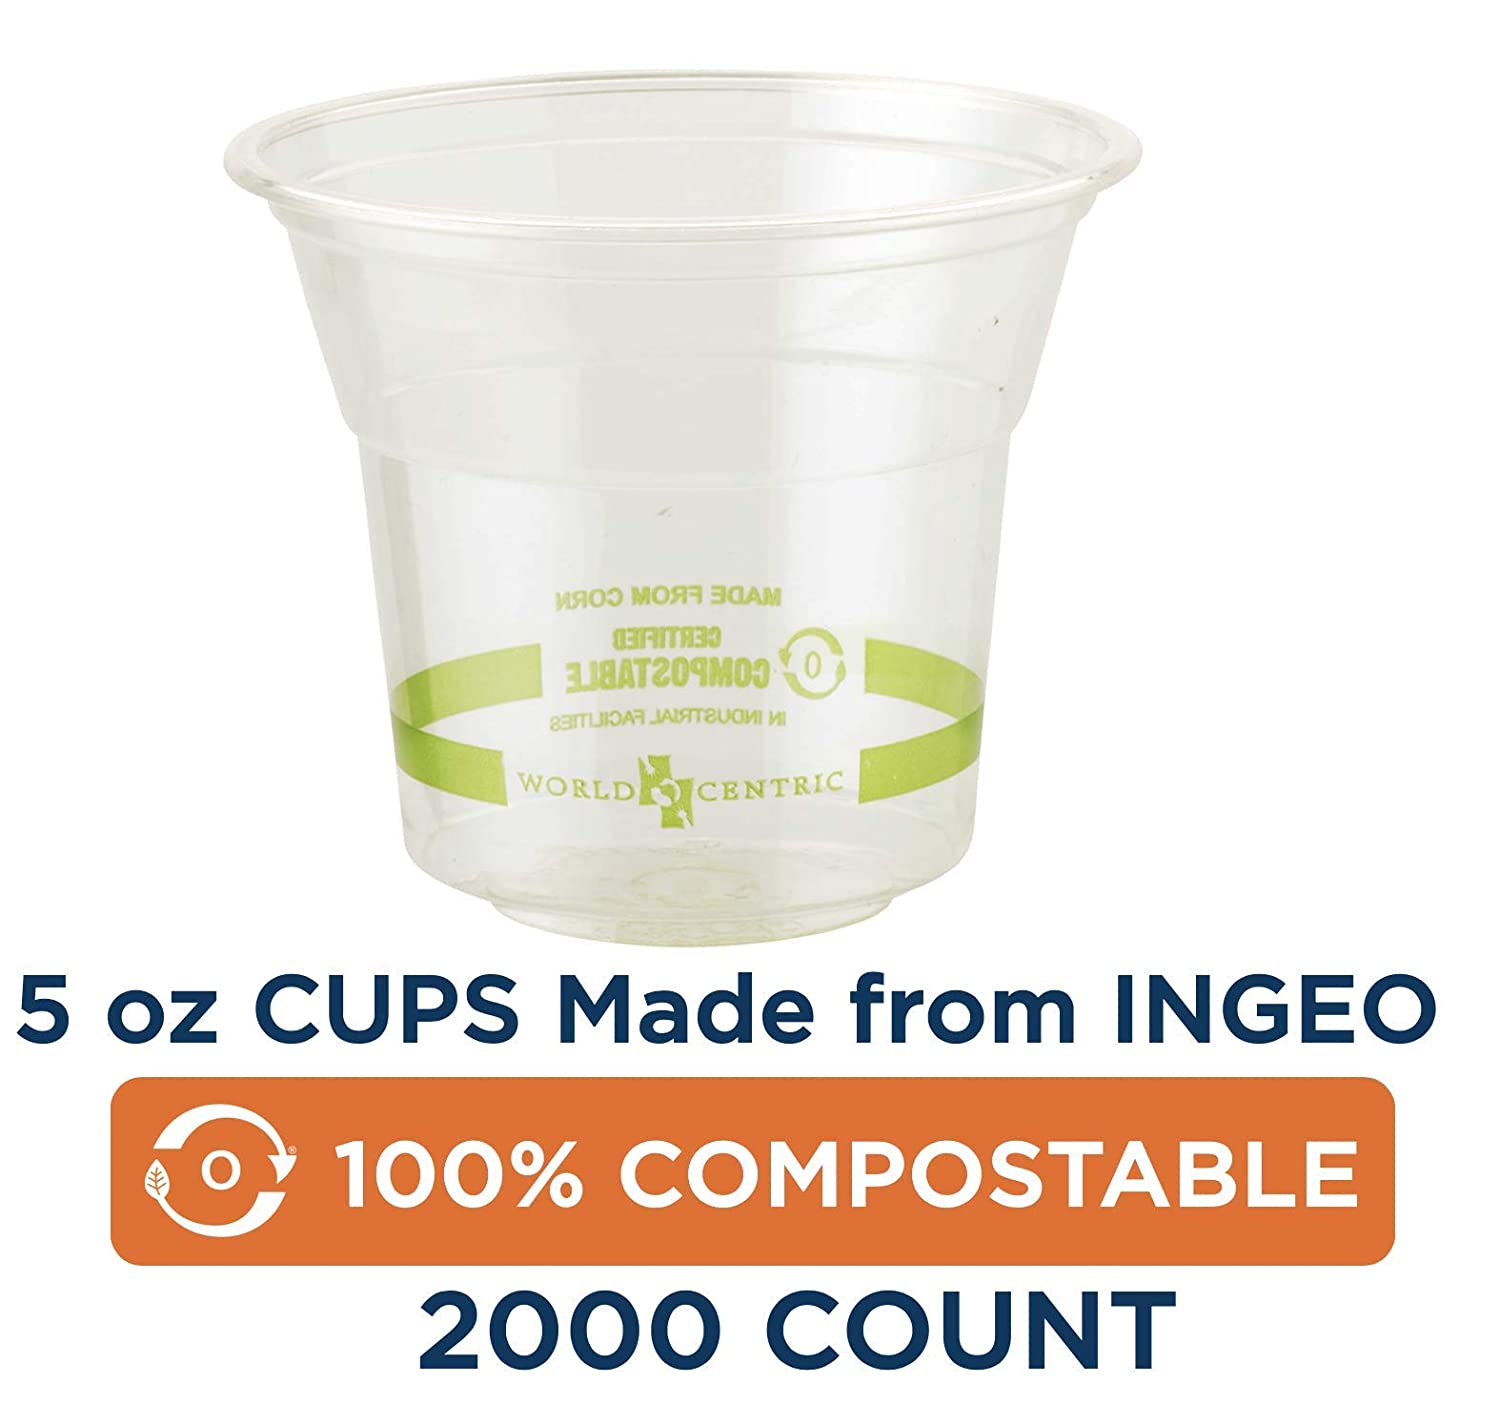 100% Compostable Cups by World Centric, Made from Ingeo PLA, for Cold Drinks, Clear, 5 oz (Pack of 2000) 619Uzncry2BL._SL1500_